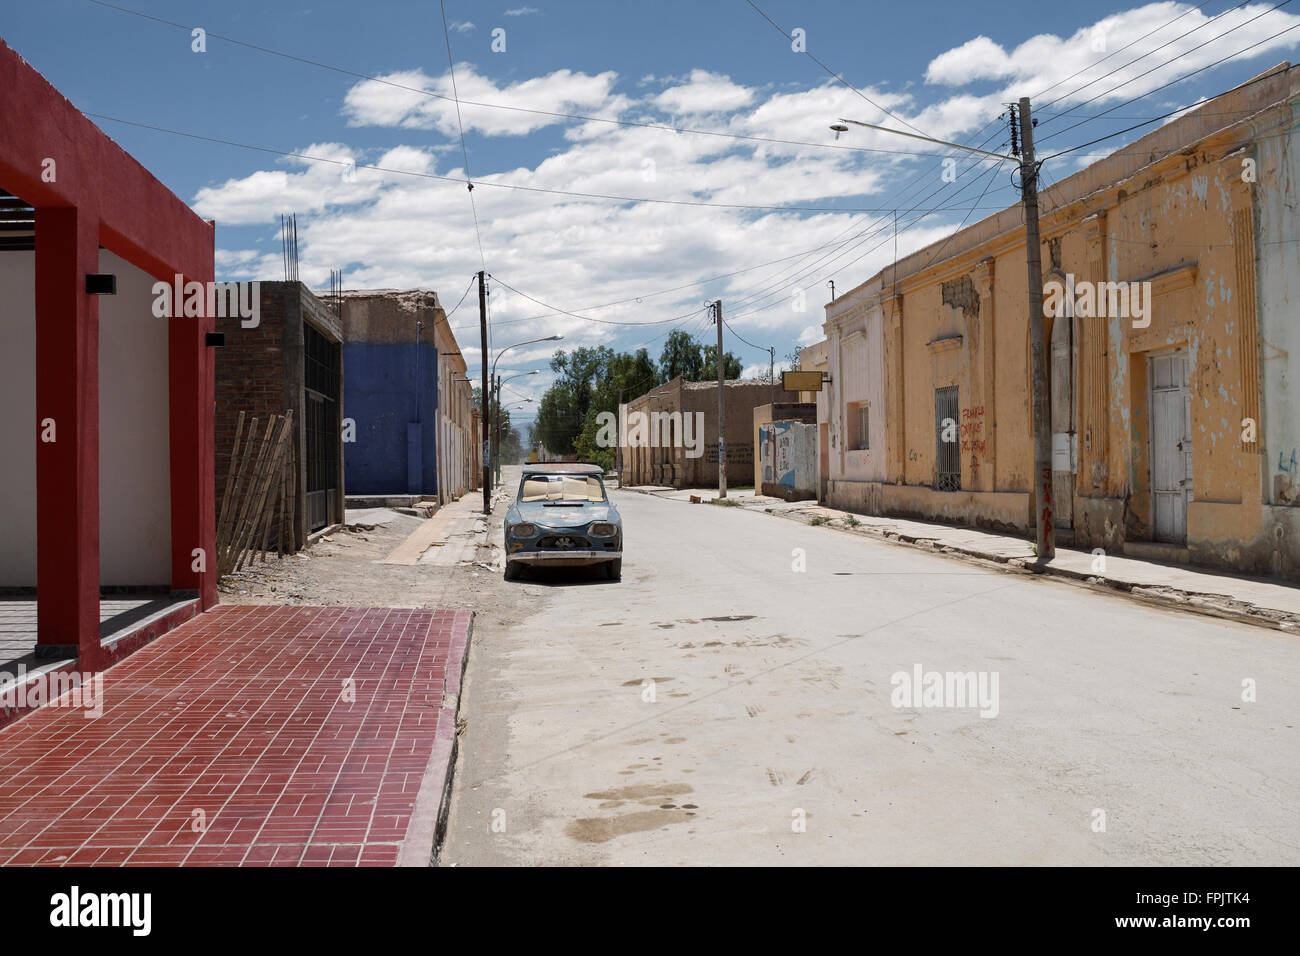 Village street and houses townscape  infrastructure argentina - Stock Image